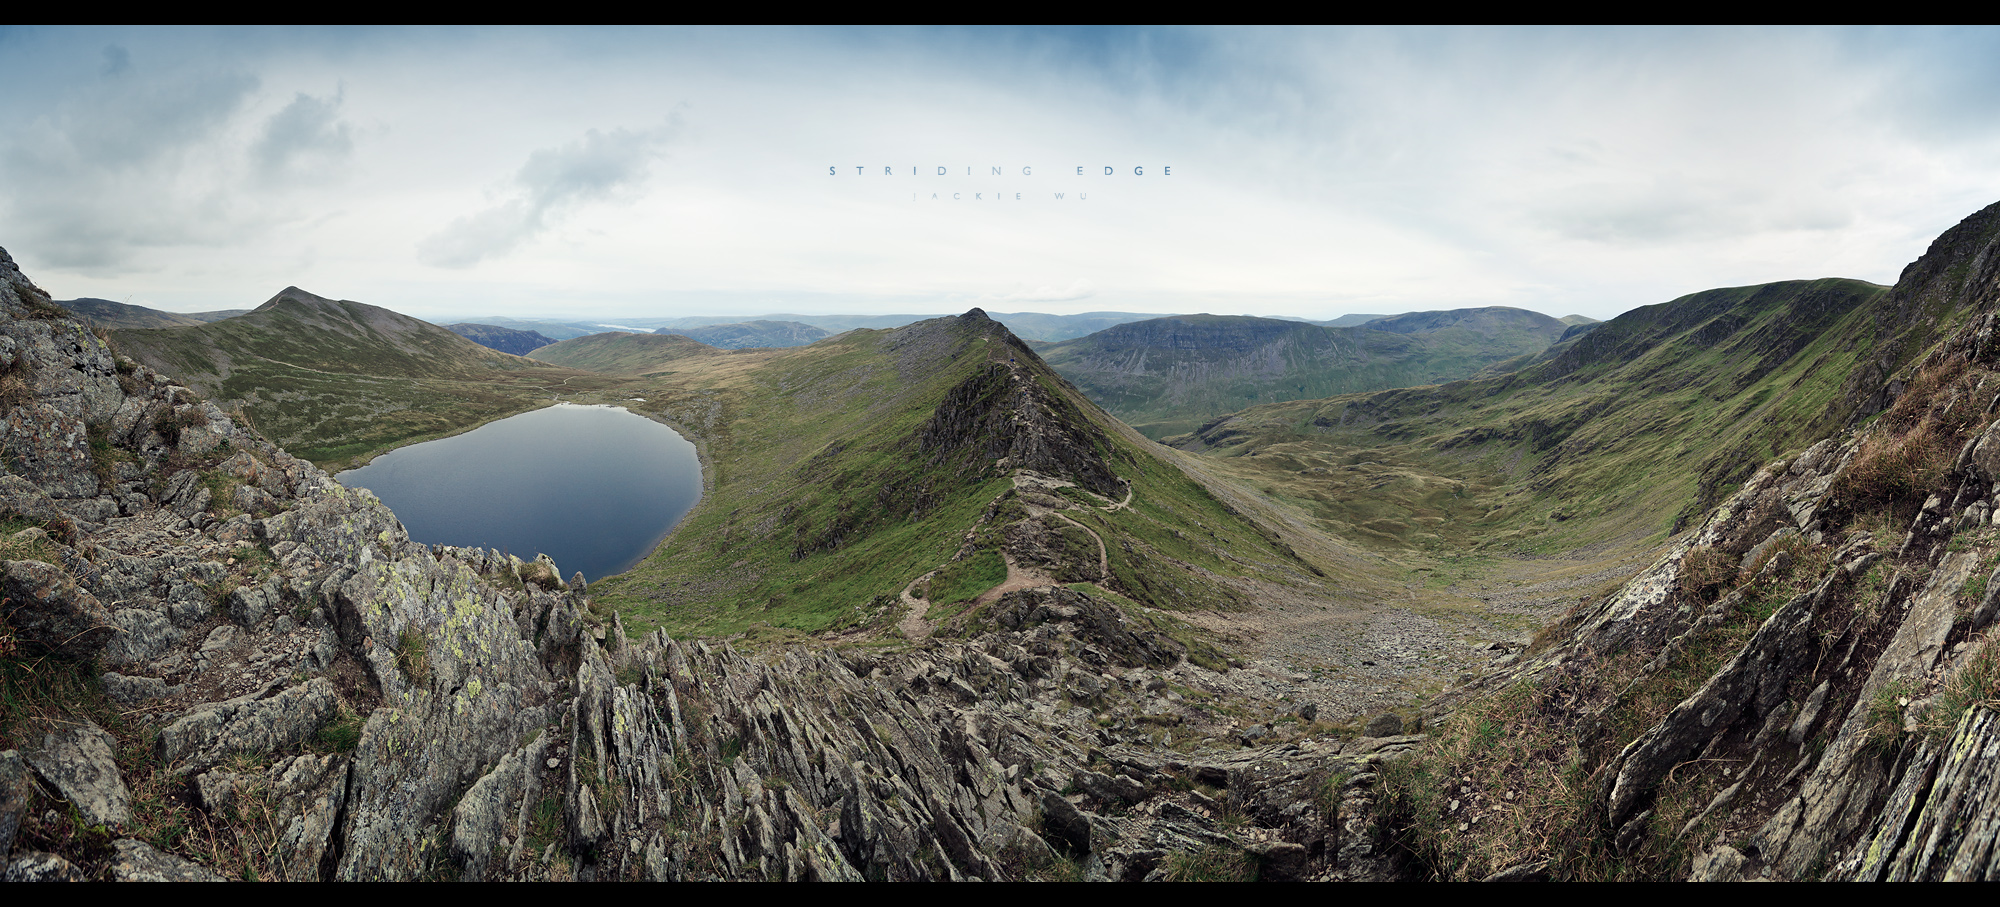 Striding Edge by geckokid